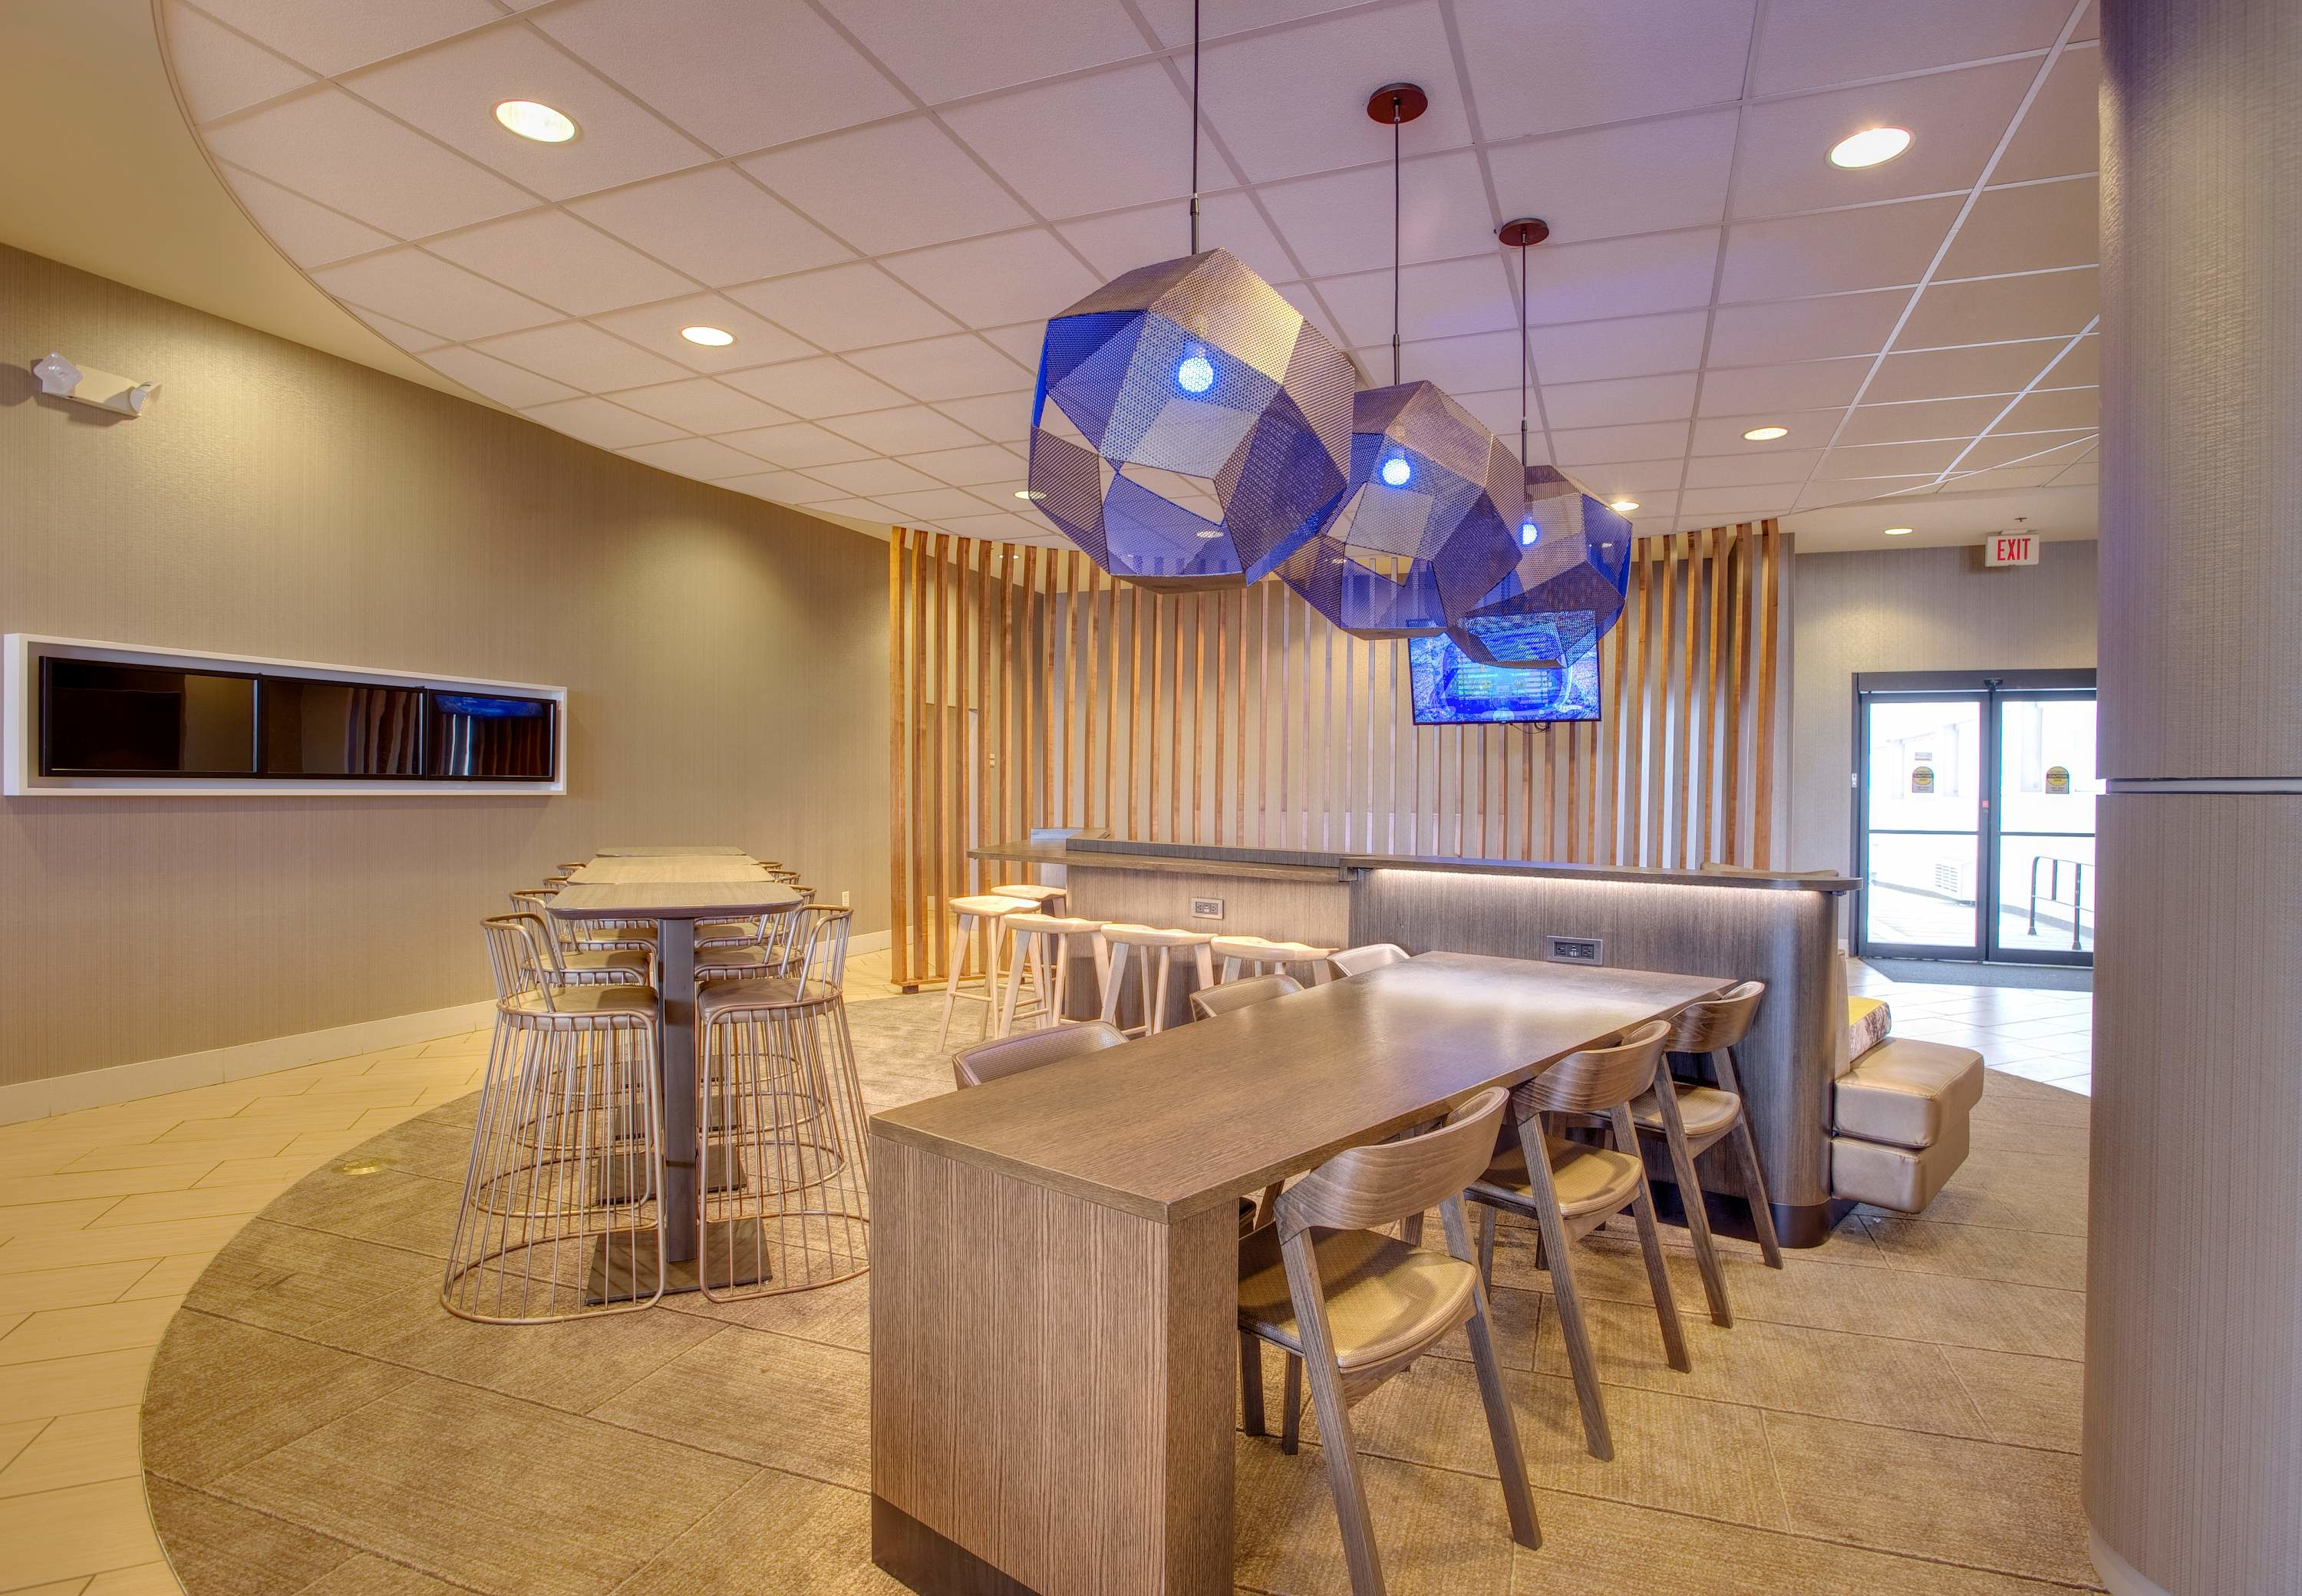 SpringHill Suites by Marriott Lawrence image 13